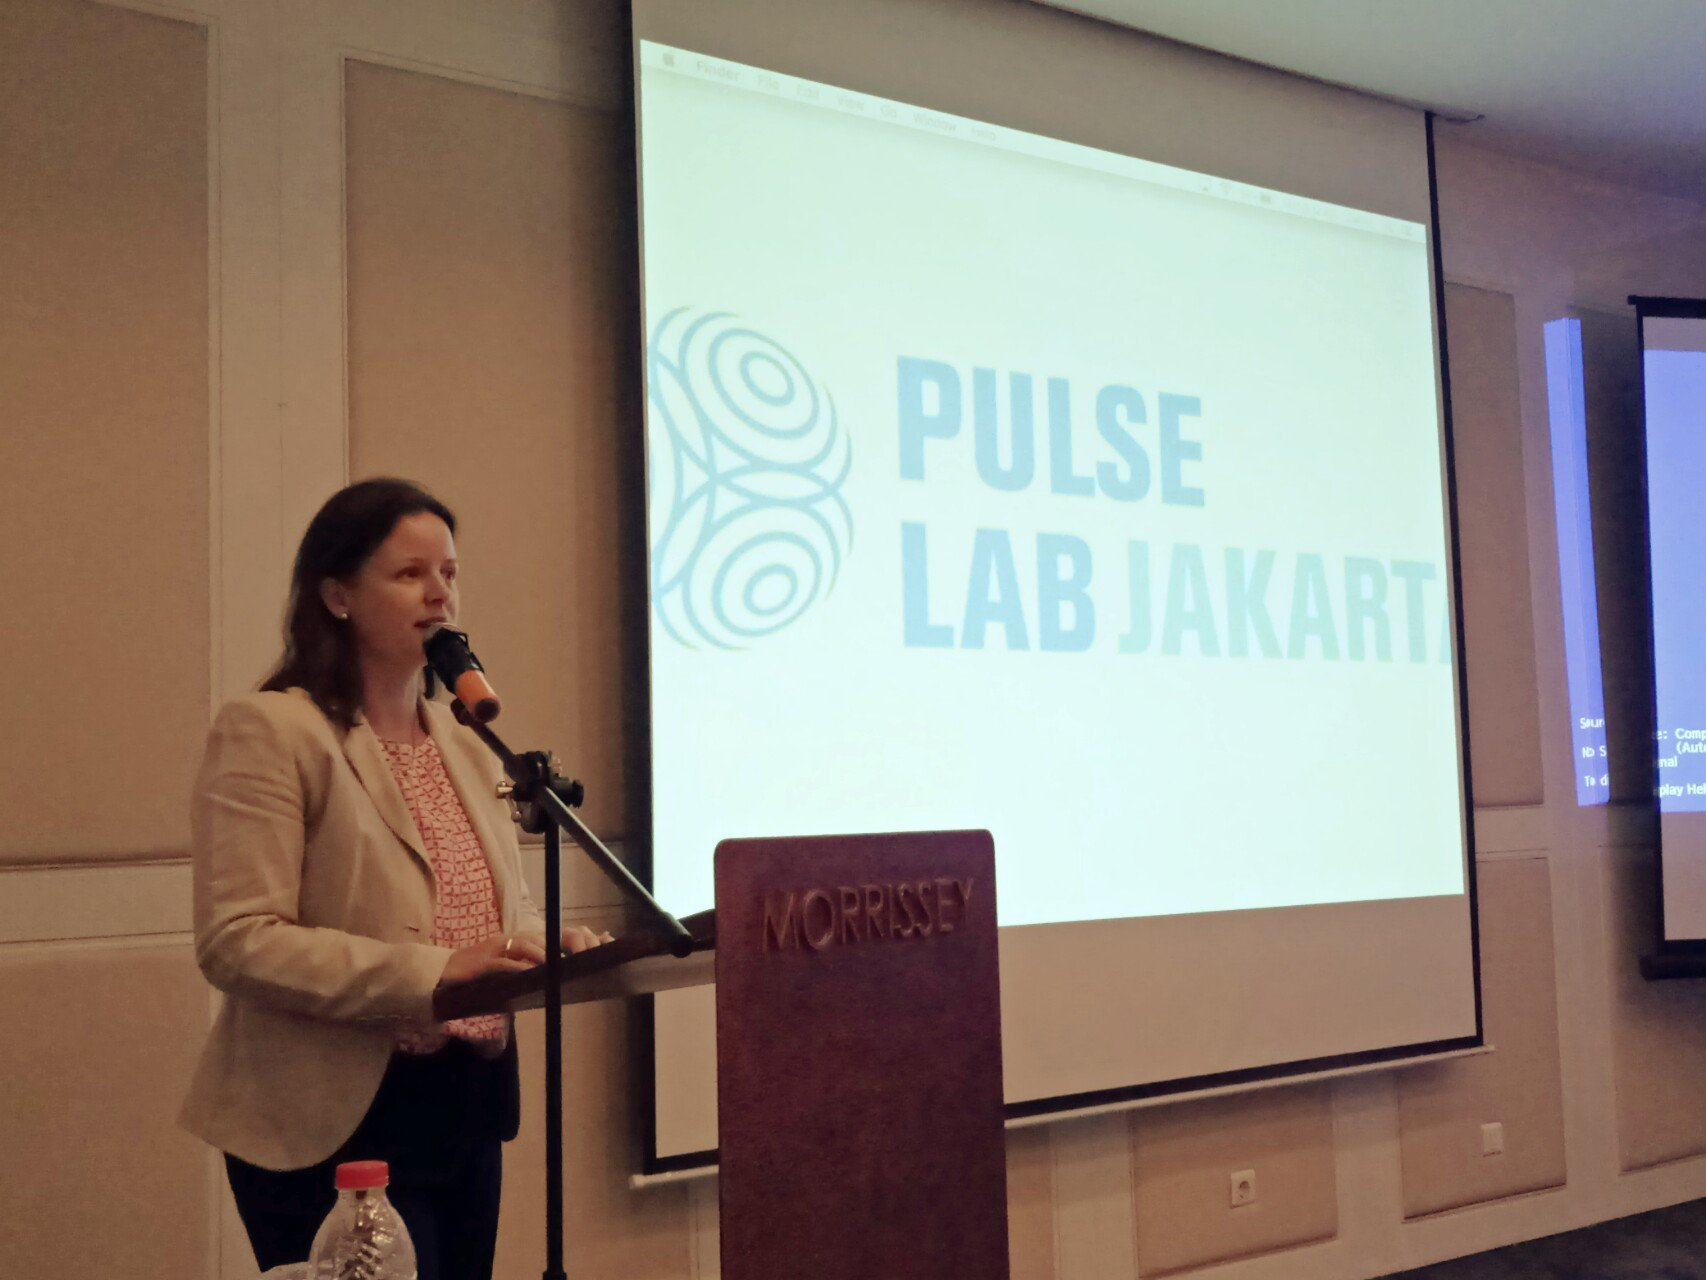 Head of Pulse Lab Jakarta, @dervalausher on the stage to welcome everyone at the workshop #DataCollab https://t.co/5a94OEeH4m